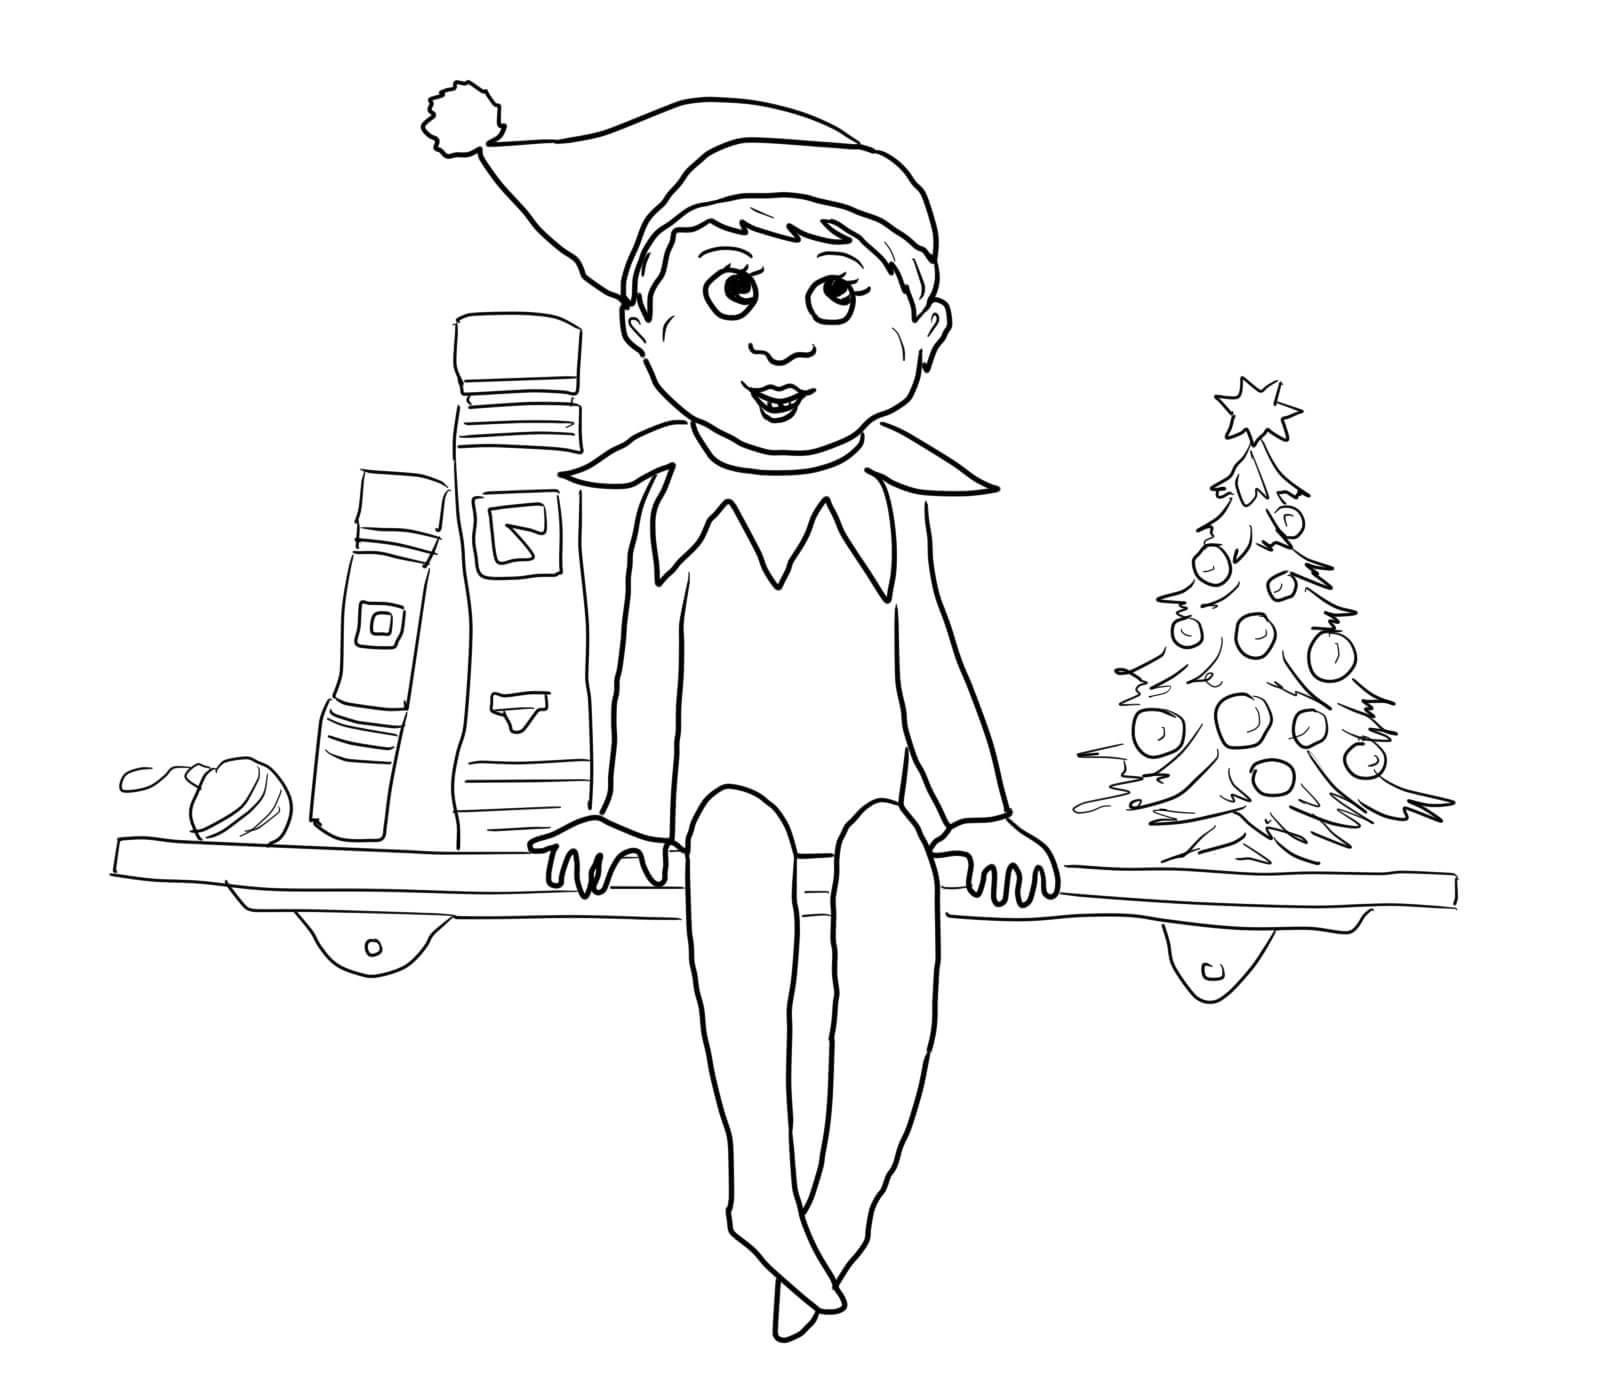 Elf On The Shelf Coloring Sheets Christmas Educative Printable Printable Christmas Coloring Pages Coloring Pages Coloring Sheets